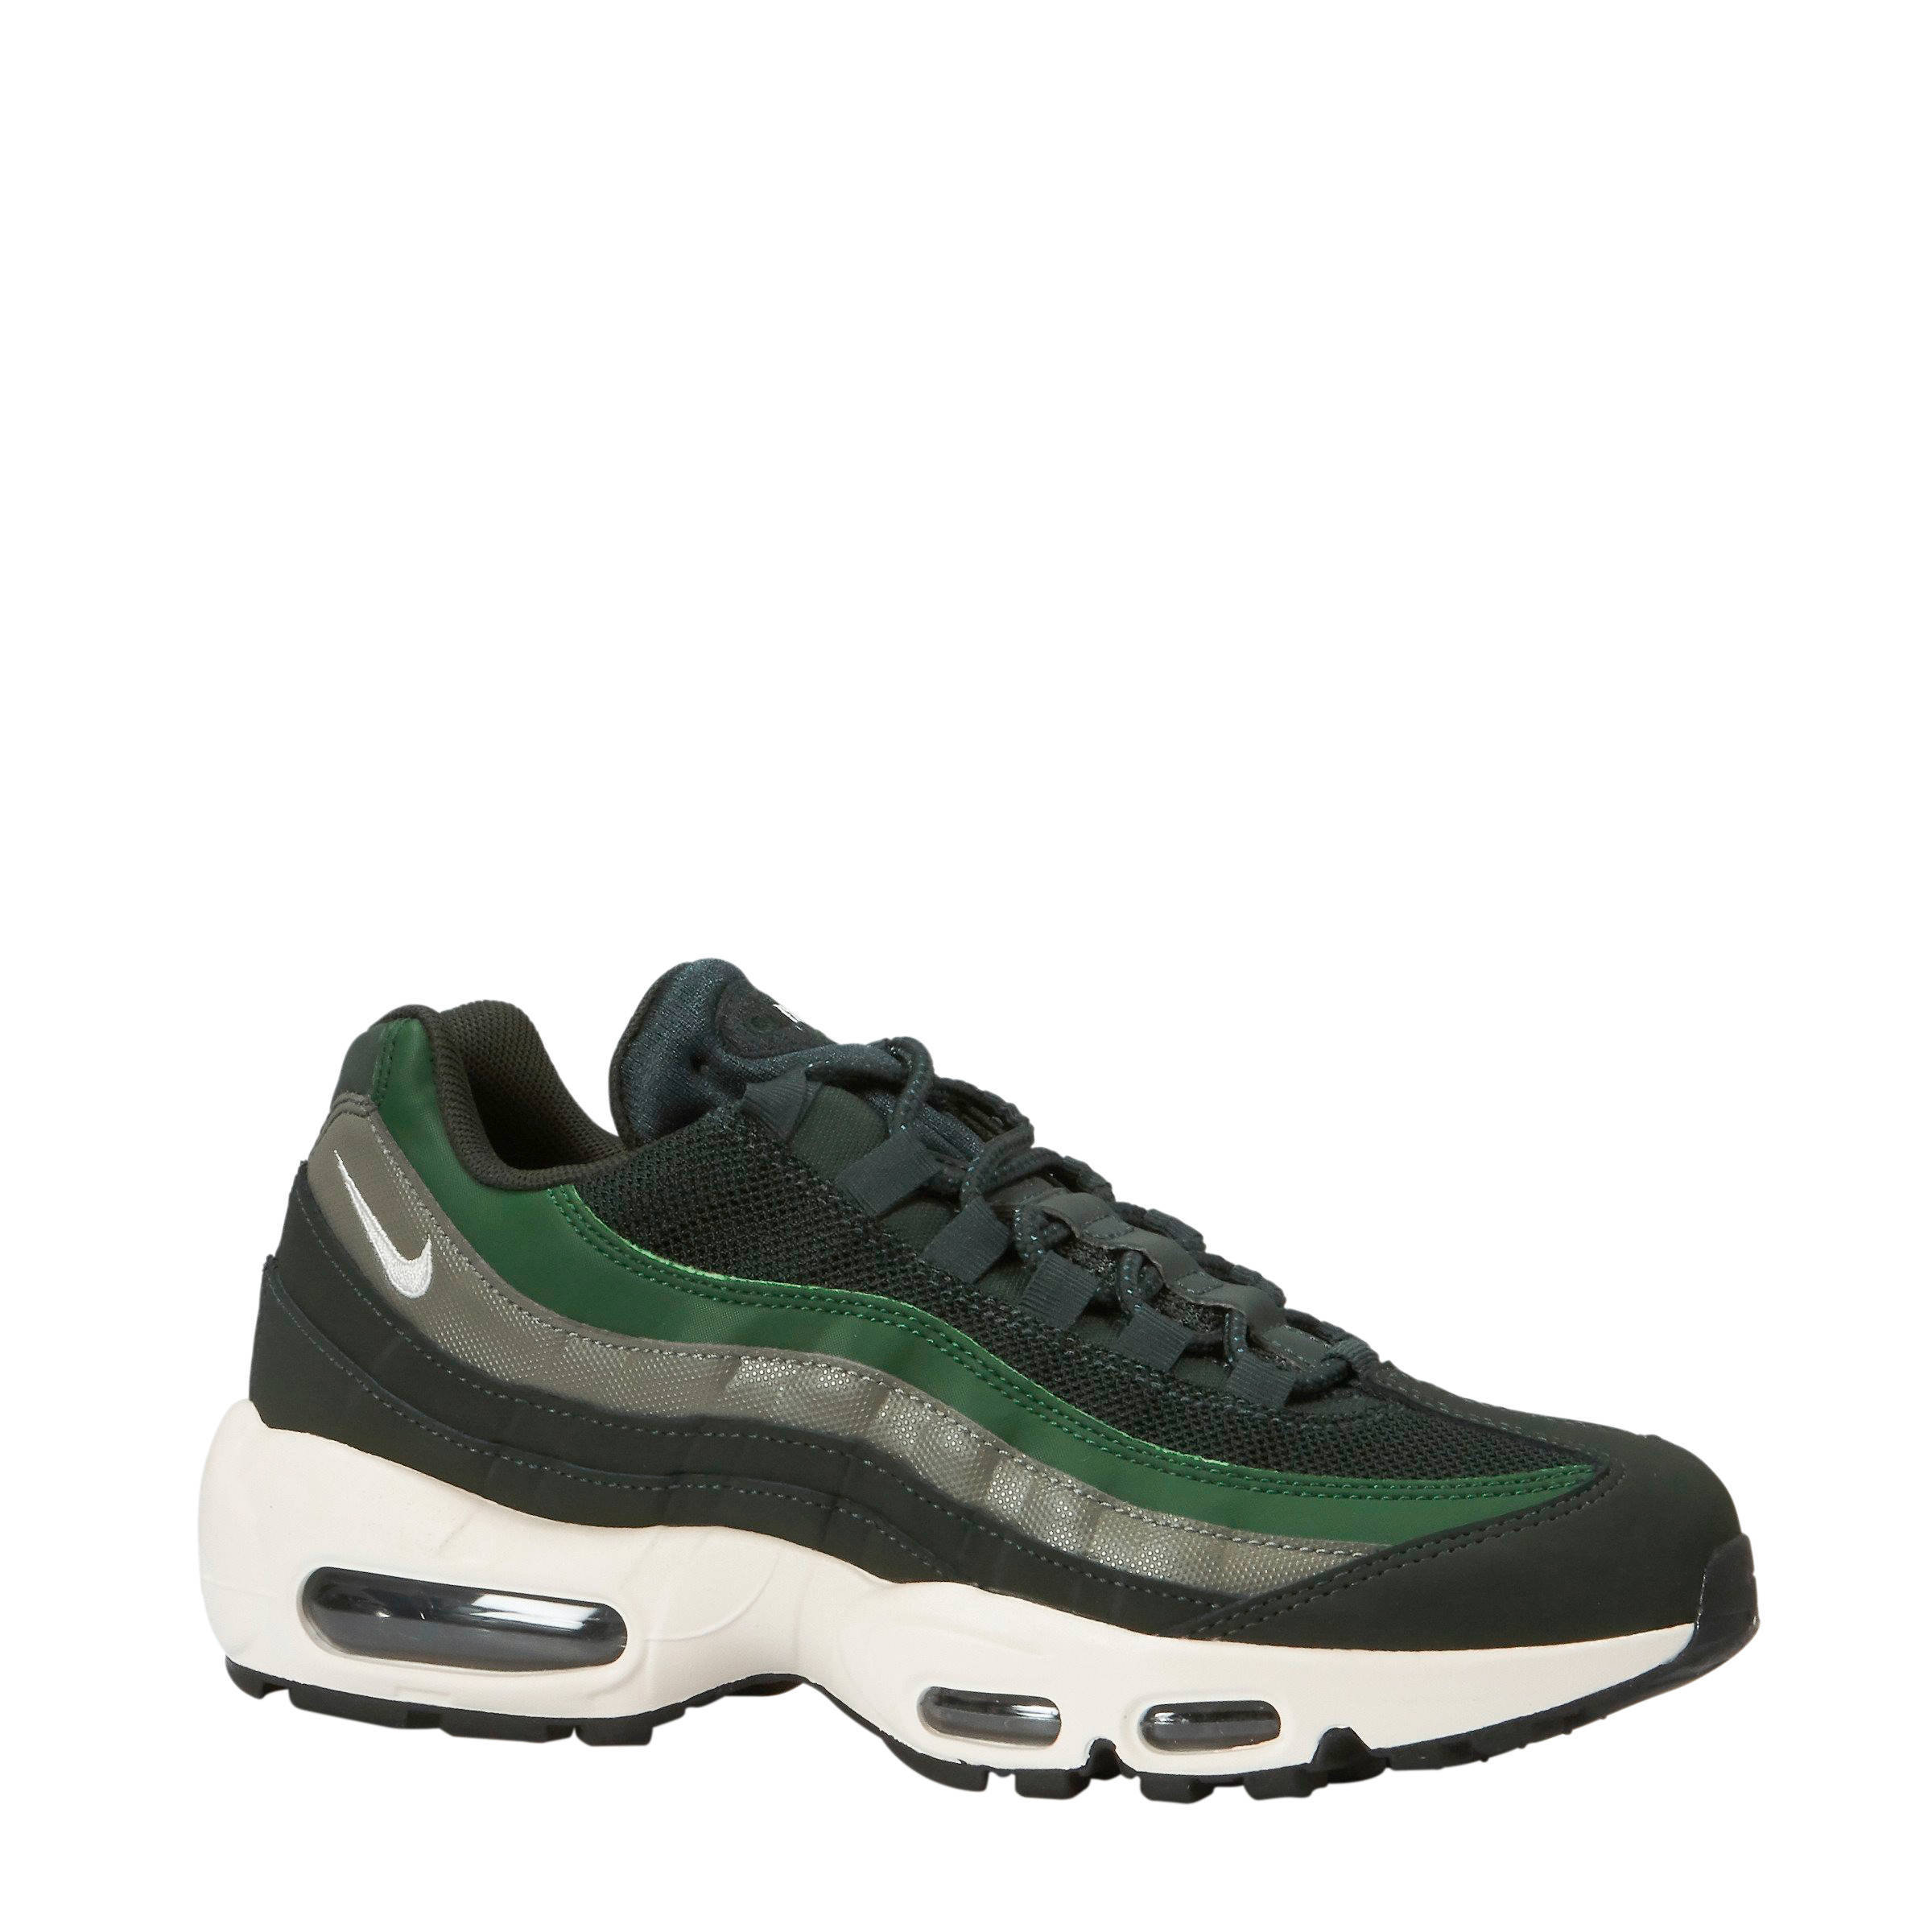 nike air max 95 groen heren